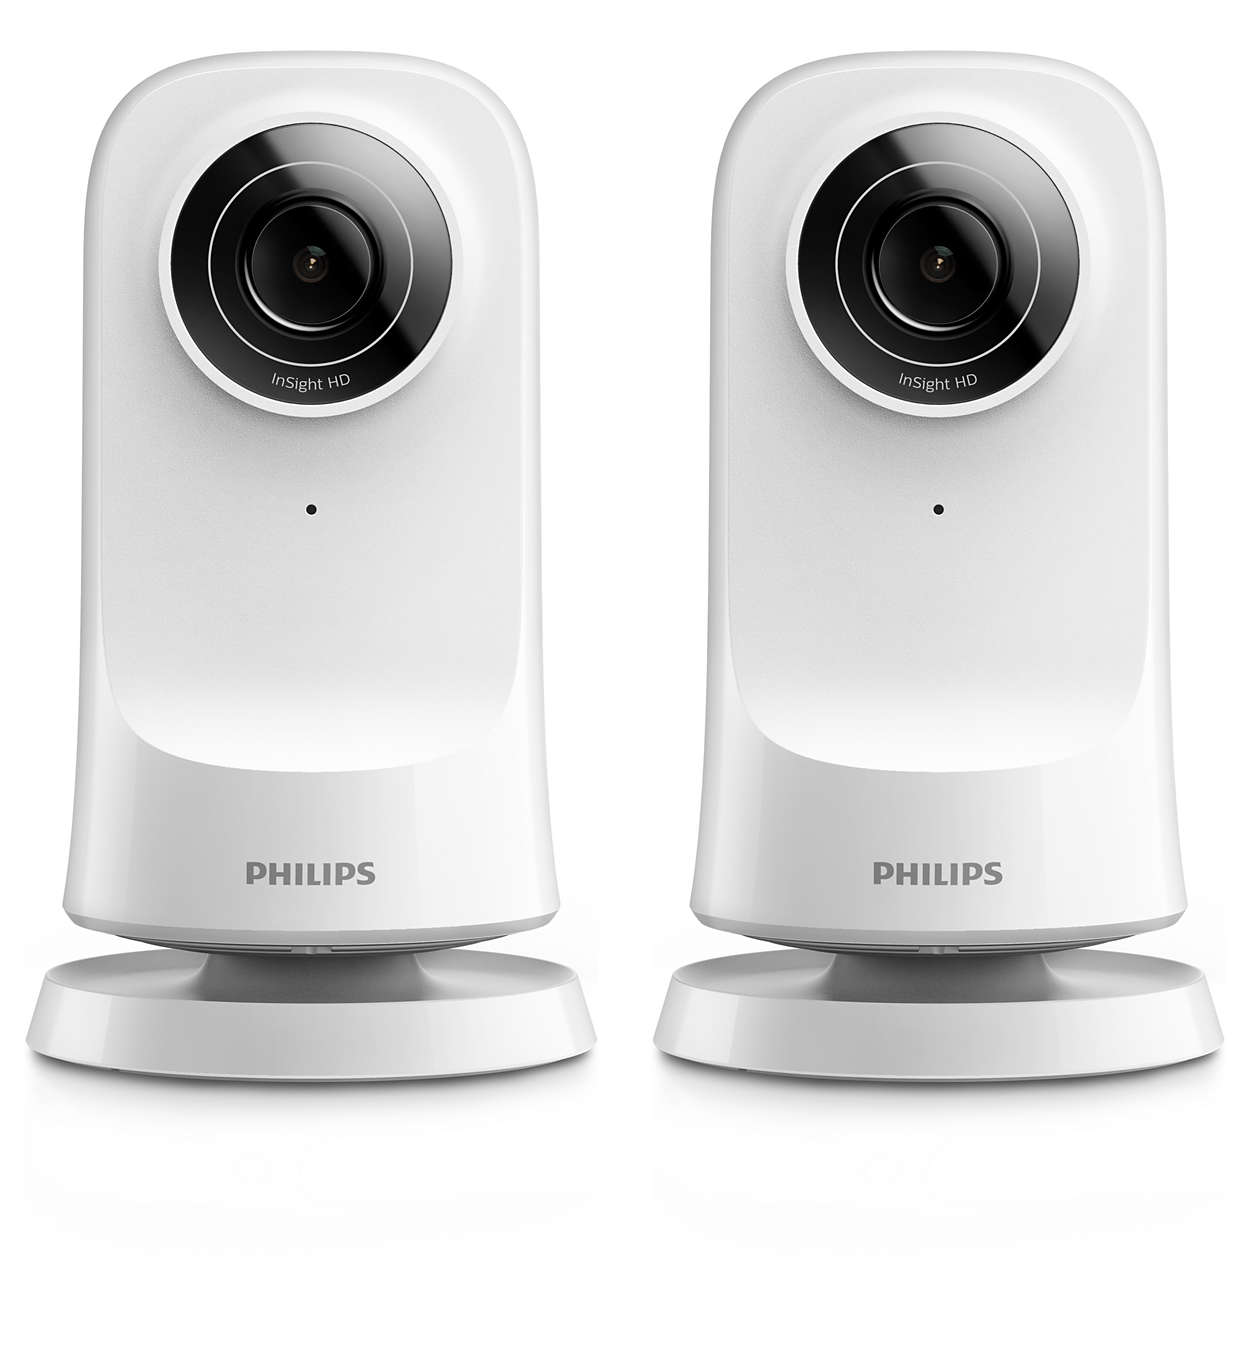 syst me de surveillance hd sans fil in sight m115g 12 philips. Black Bedroom Furniture Sets. Home Design Ideas